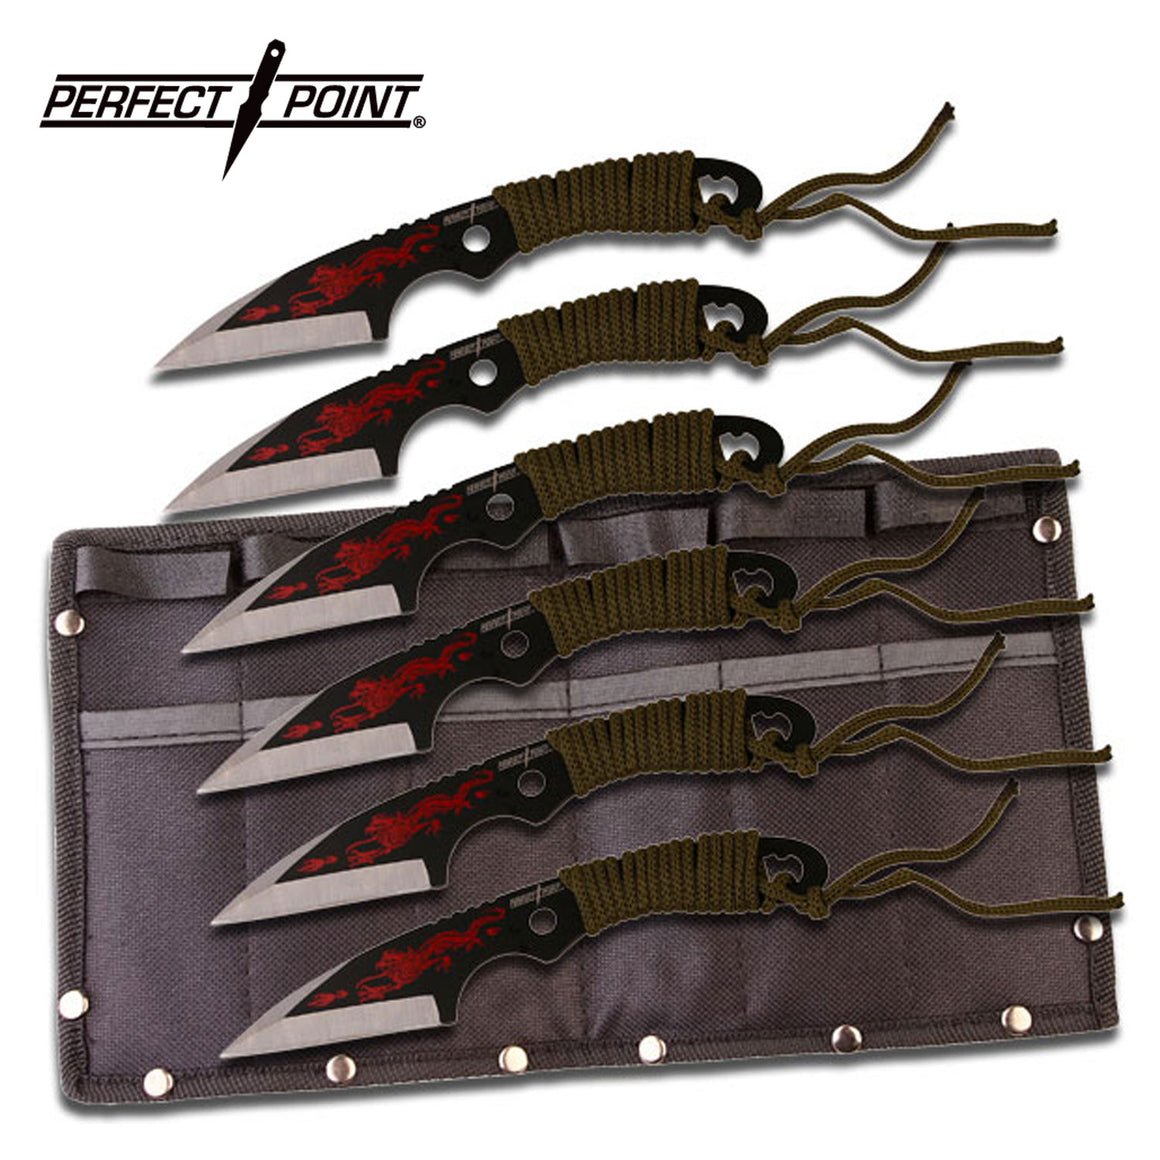 Perfect Point PP-023-6 Throwing Knife Set